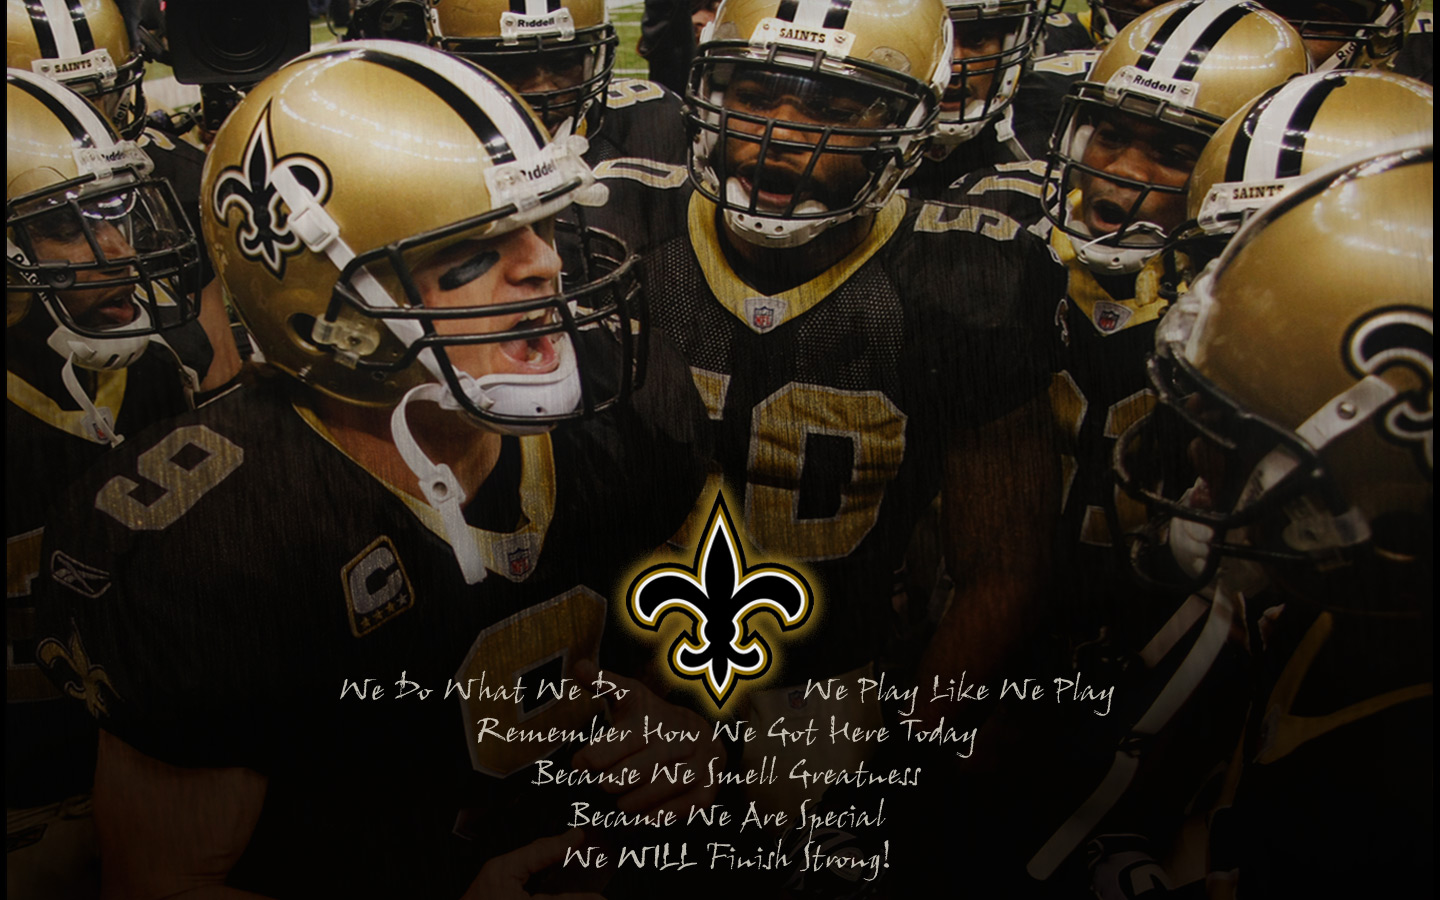 Free Download New Orleans Saints Wallpapers New Orleans Saints